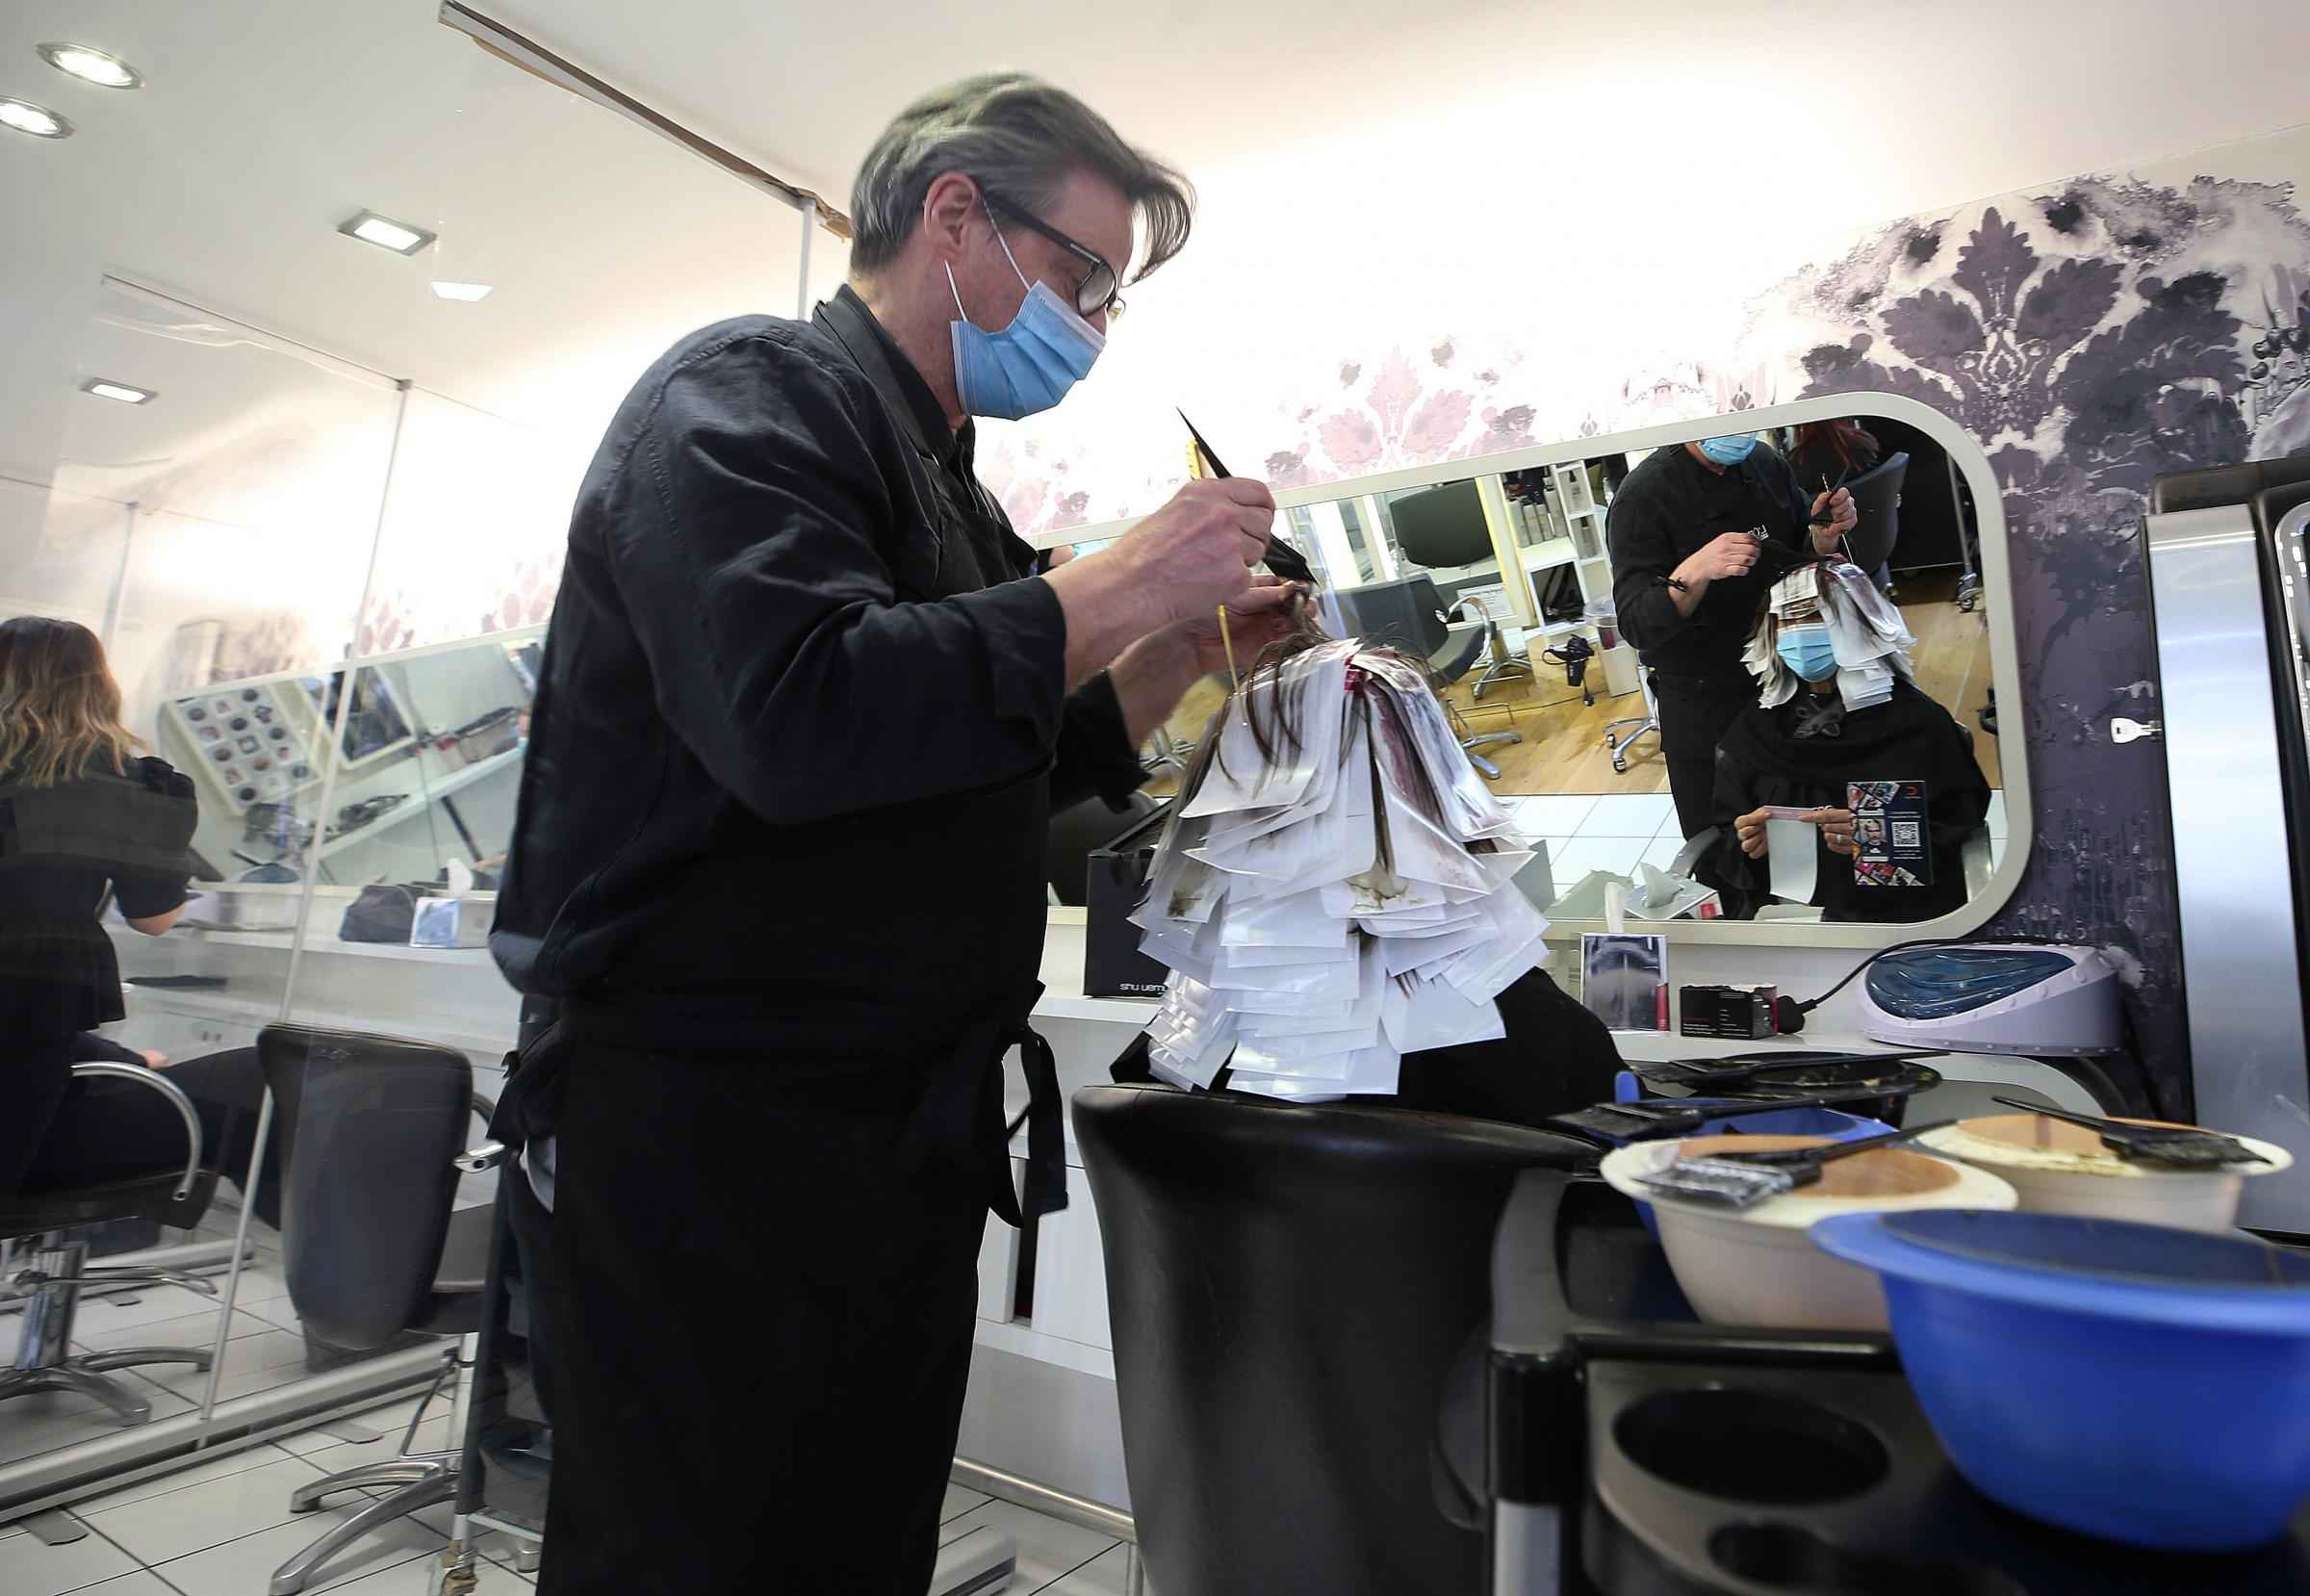 Glasgow hairdressers praised for coronavirus safety measures after reopening